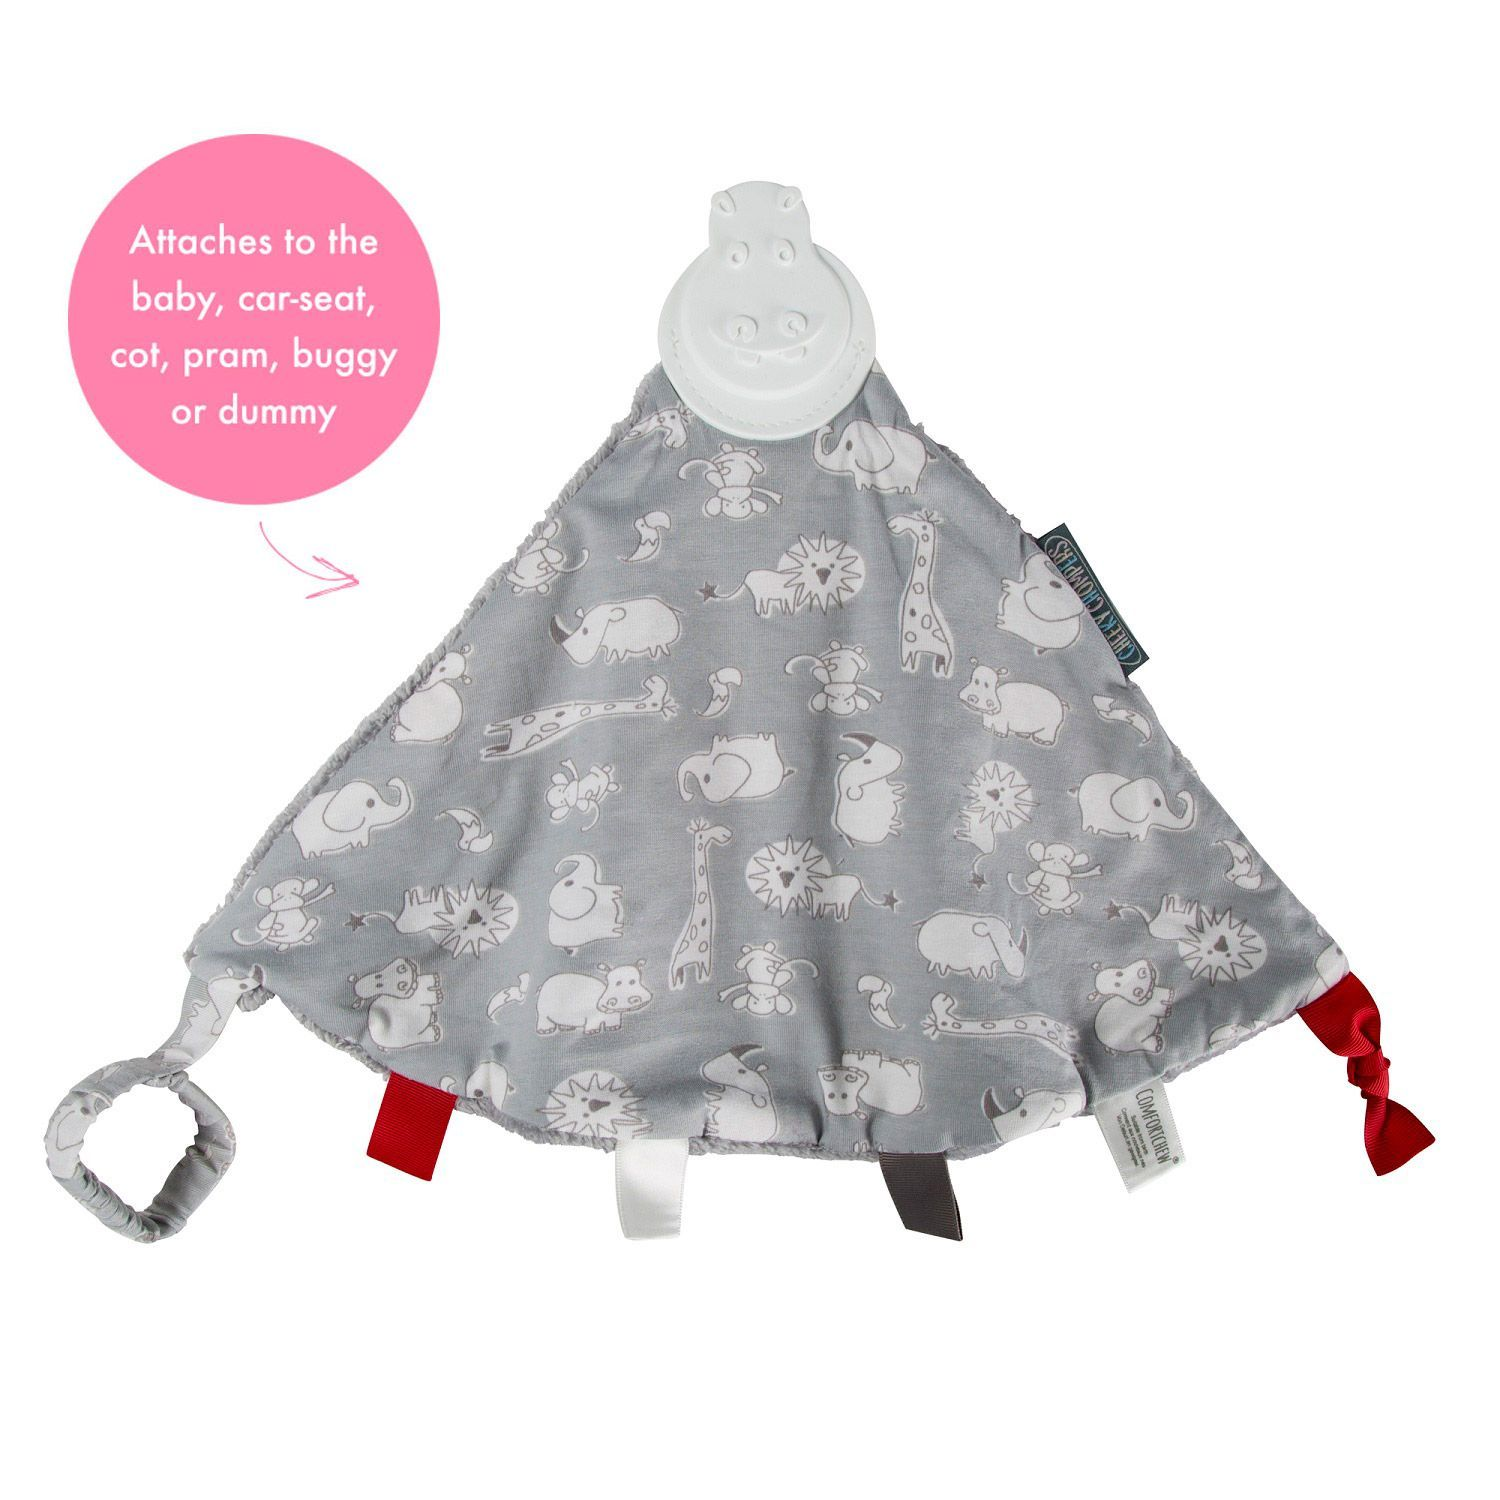 Nusseklud fra cheeky chompers - comforterchew 4i1 - chewy & co fra Cheeky chombers fra babygear.dk